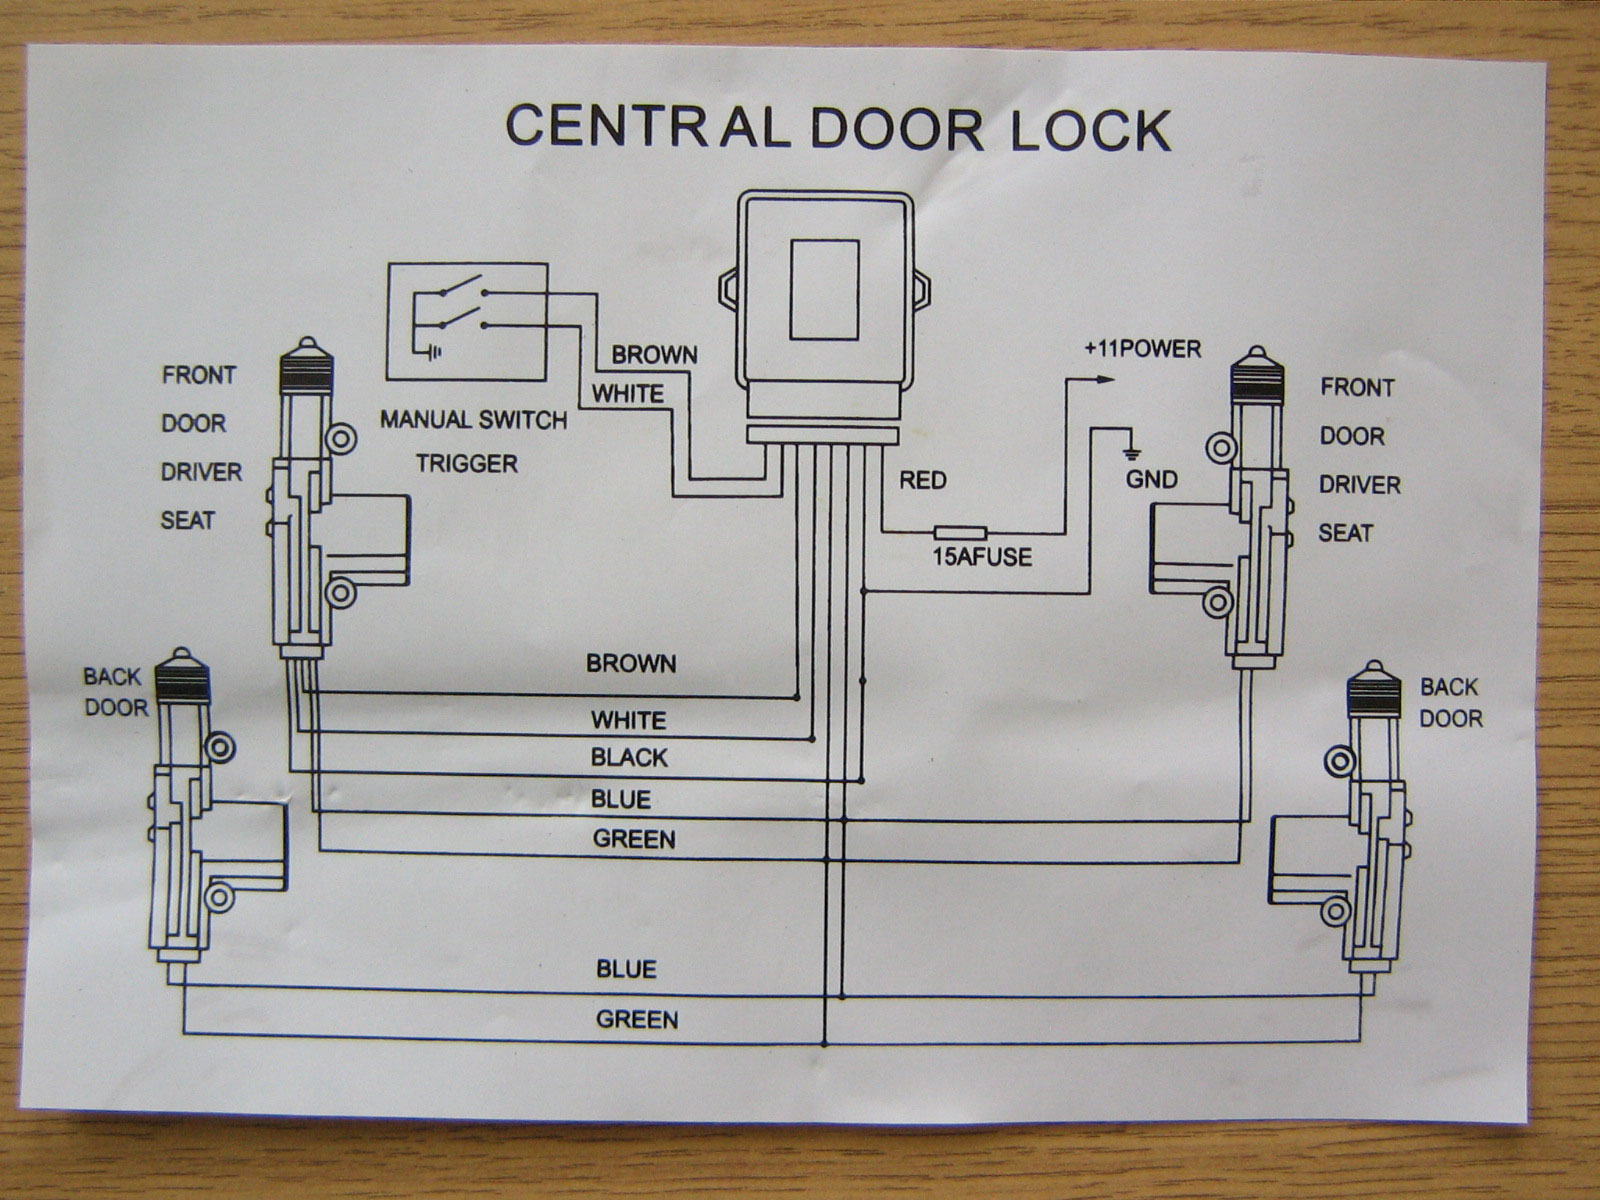 Door Lock System Wiring Diagram On Power Door Lock Wiring Diagram